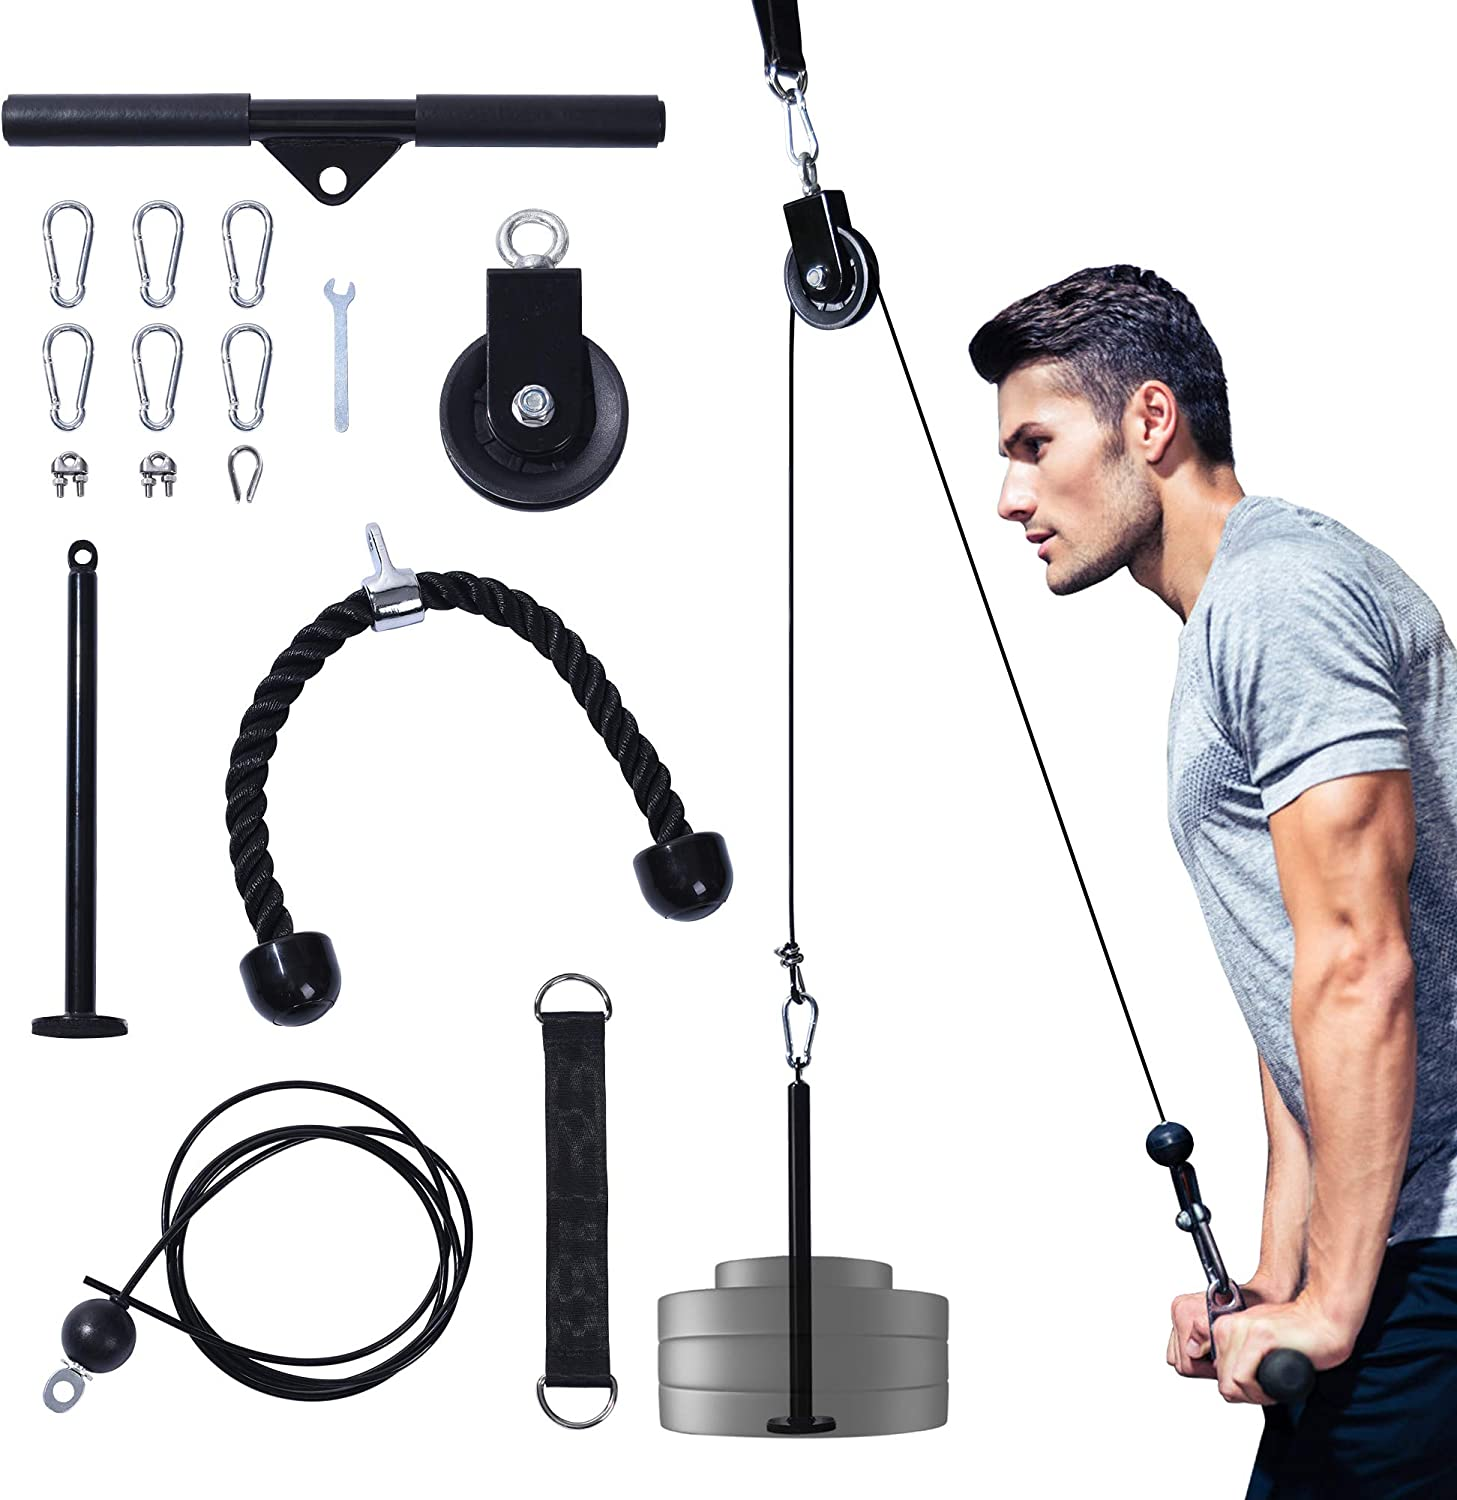 Upgraded LAT Pulldown Cable Pulley Attachments System Gym Equipment,Adjustable Pull Down Machine for Professiona Exercise Biceps Curl,Back,Forearm, Shoulder - Exercise Equipment for Home Workouts